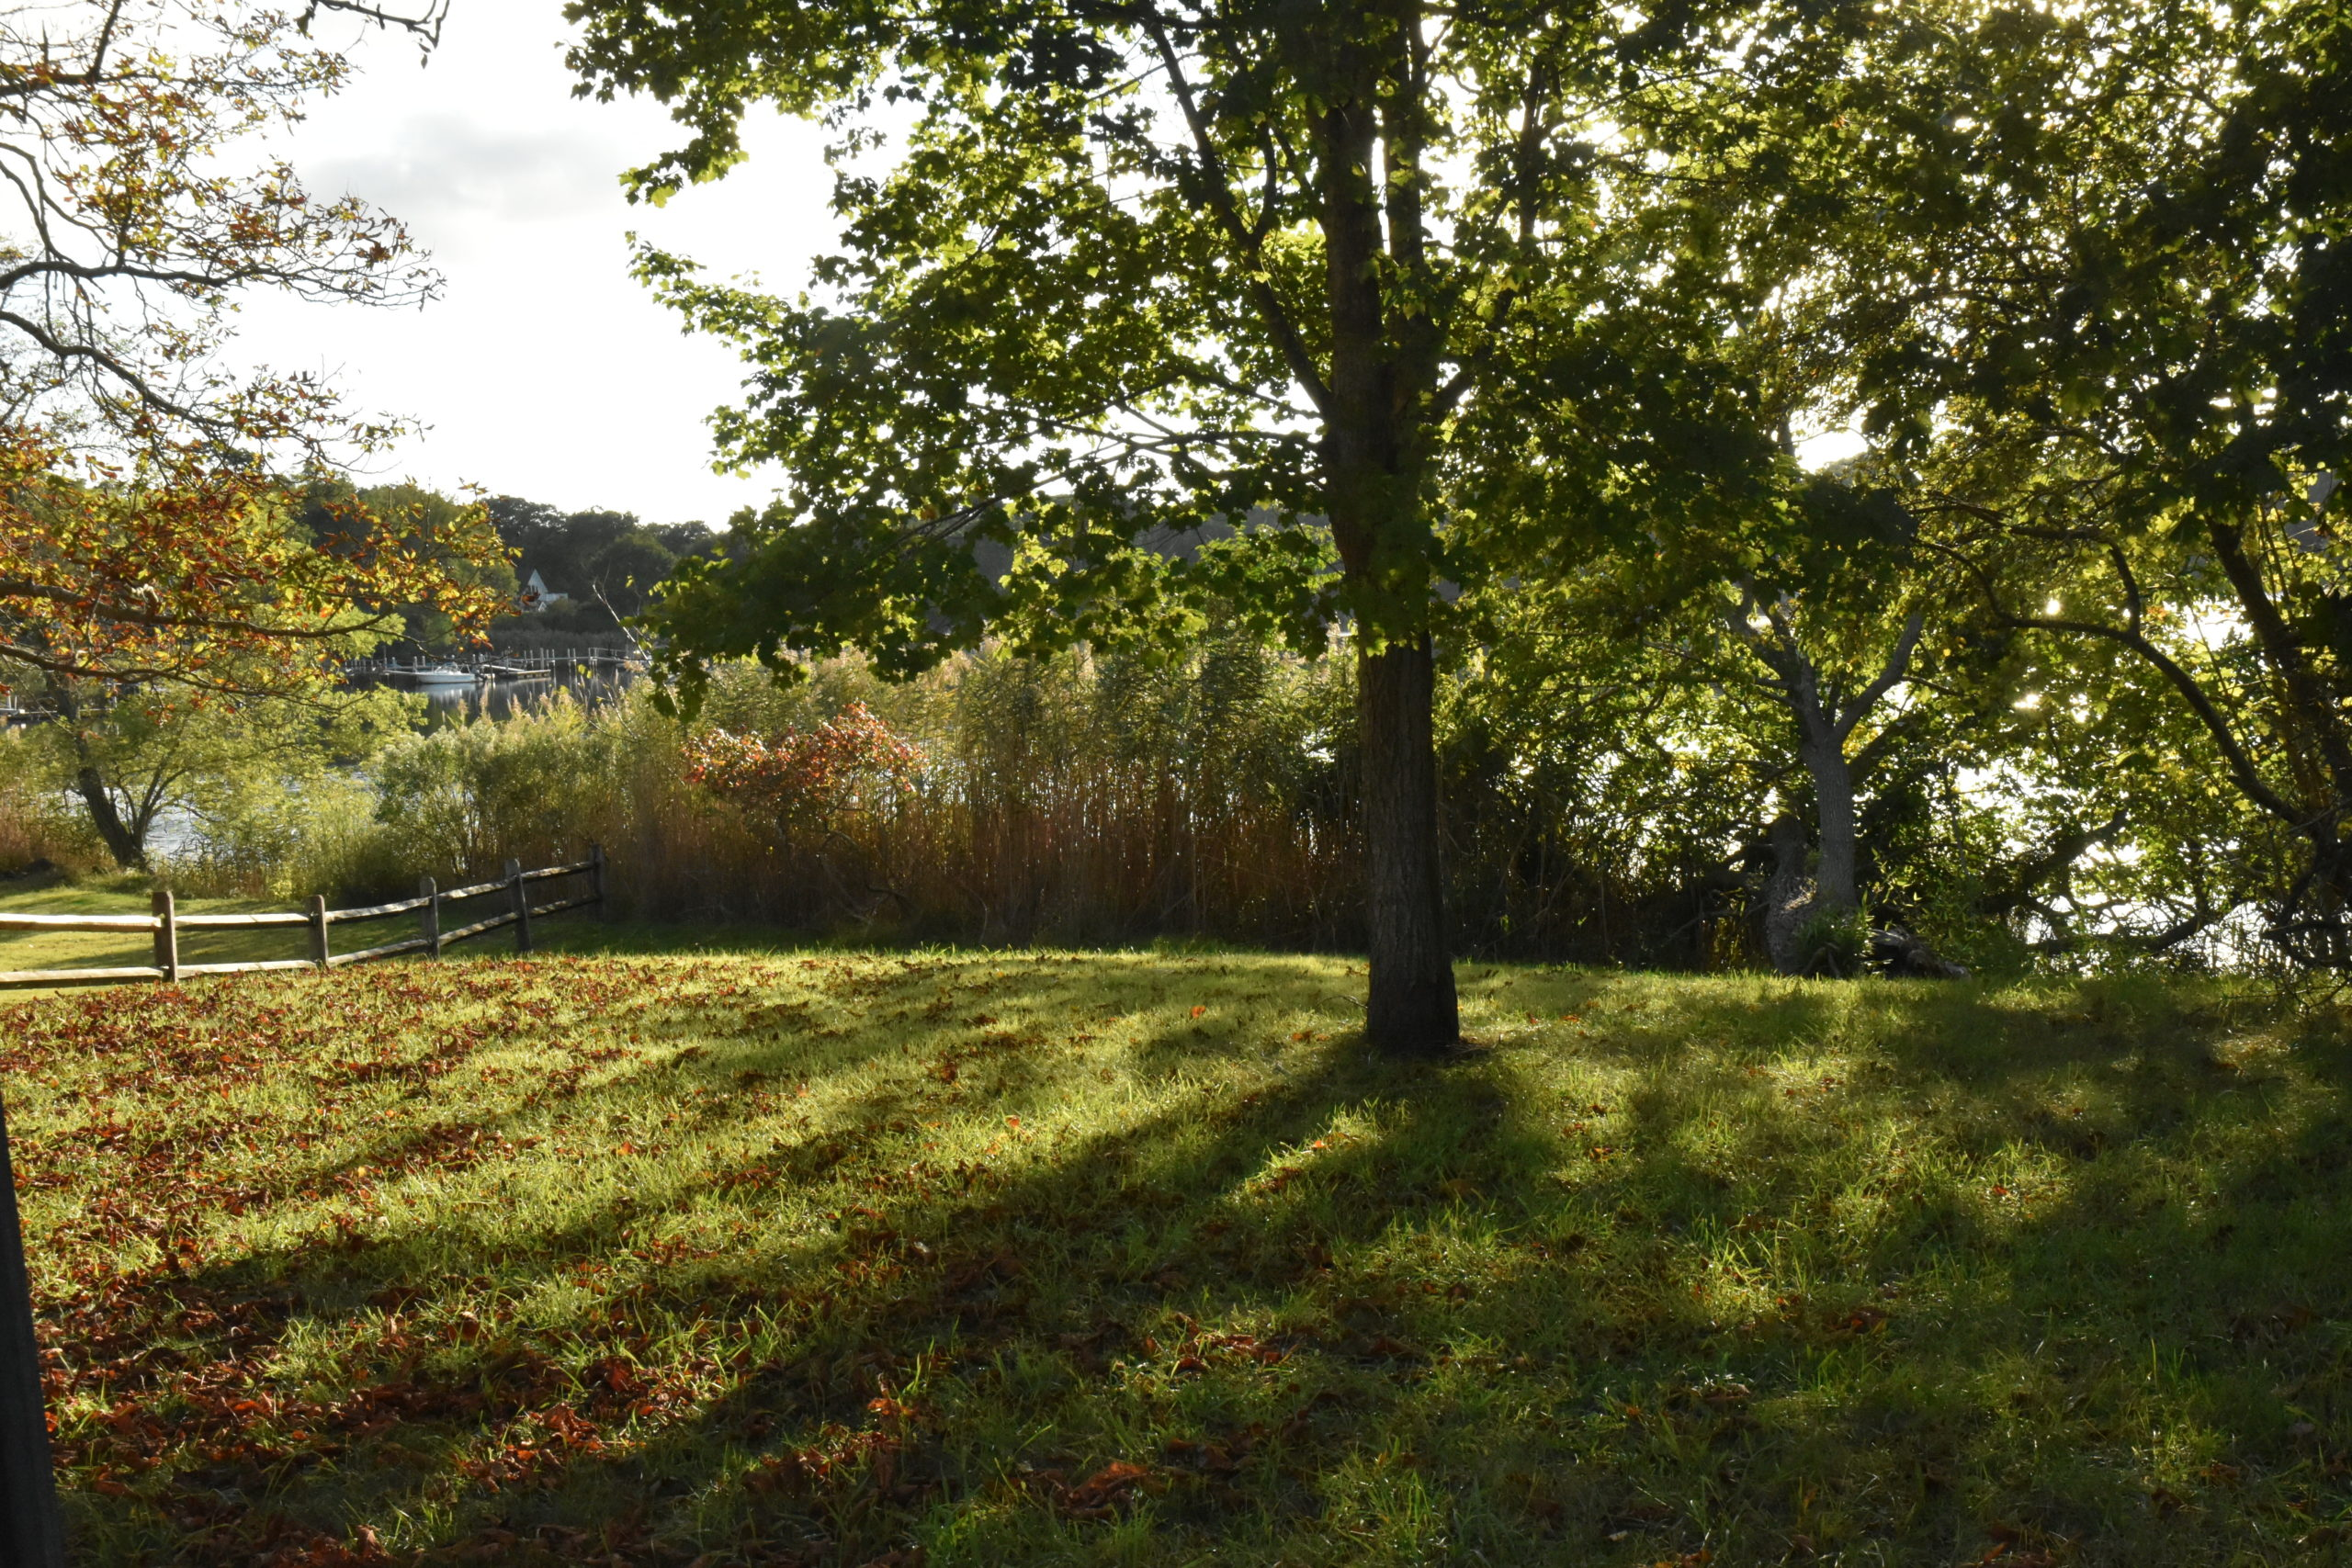 The owner of a house at the end of Green Street in Sag Harbor has offered to clear phragmites from this village-owned parcel that will effectively provide public access to the Upper Cove. STEPHEN J. KOTZ